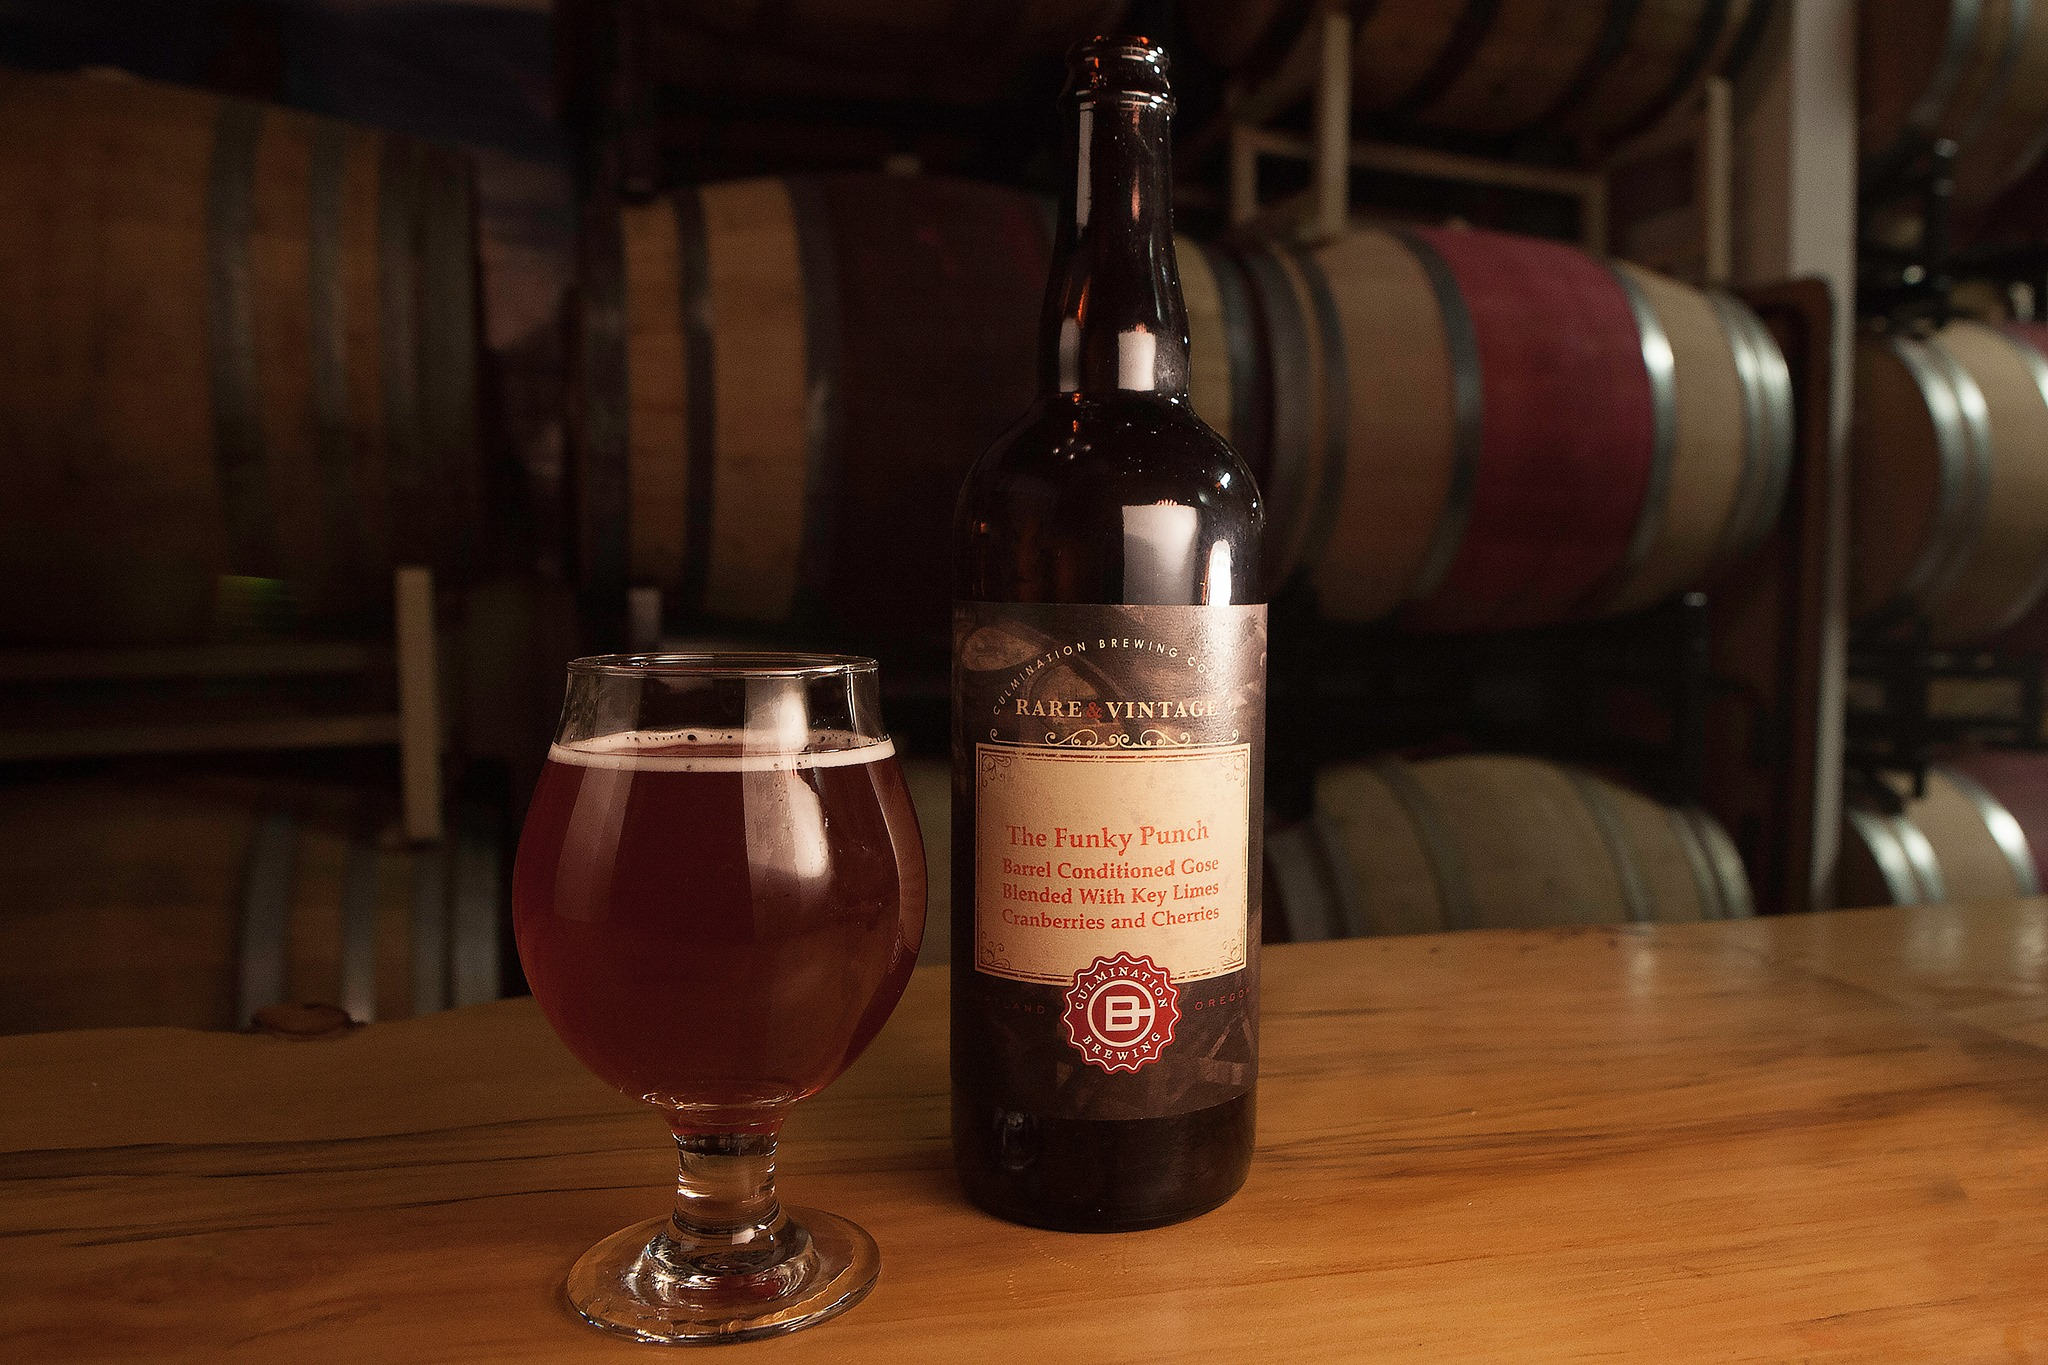 Culmination Brewing releases Funky Punch in bottles and on draft on December 7th at its brewery. (image courtesy of Culmination Brewing)